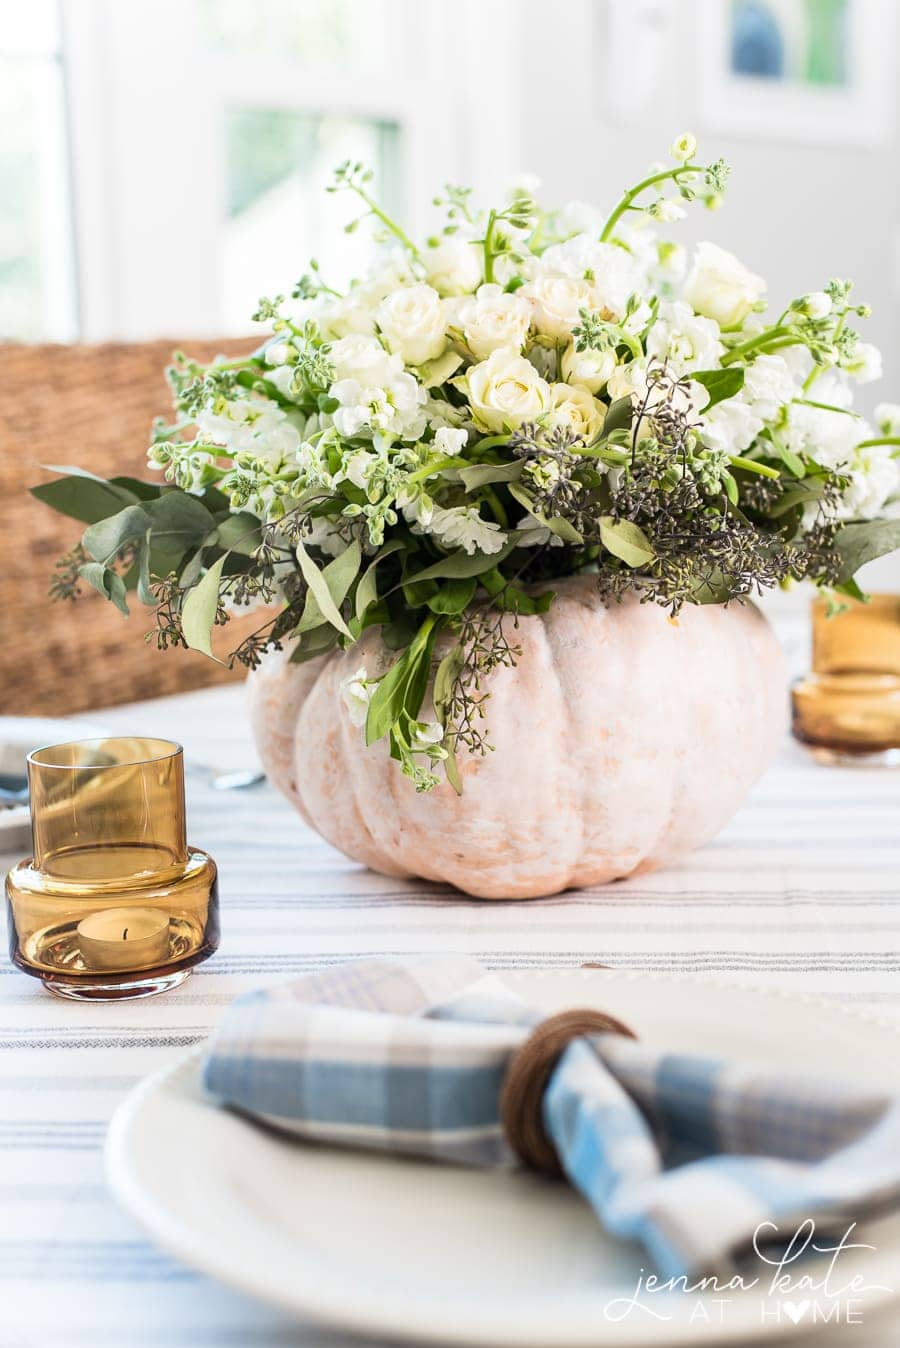 Creating a fall centerpiece with fresh flowers and a pumpkin